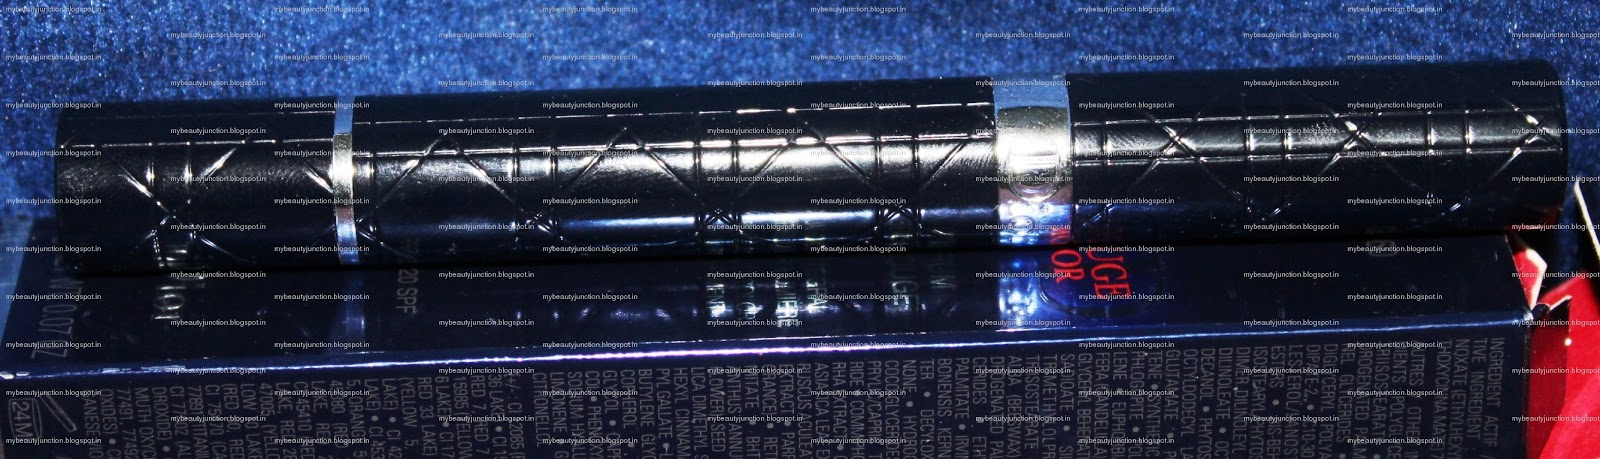 Dior Addict Extreme, Diorific, Serum de Rouge lipstick swatches, review, photos